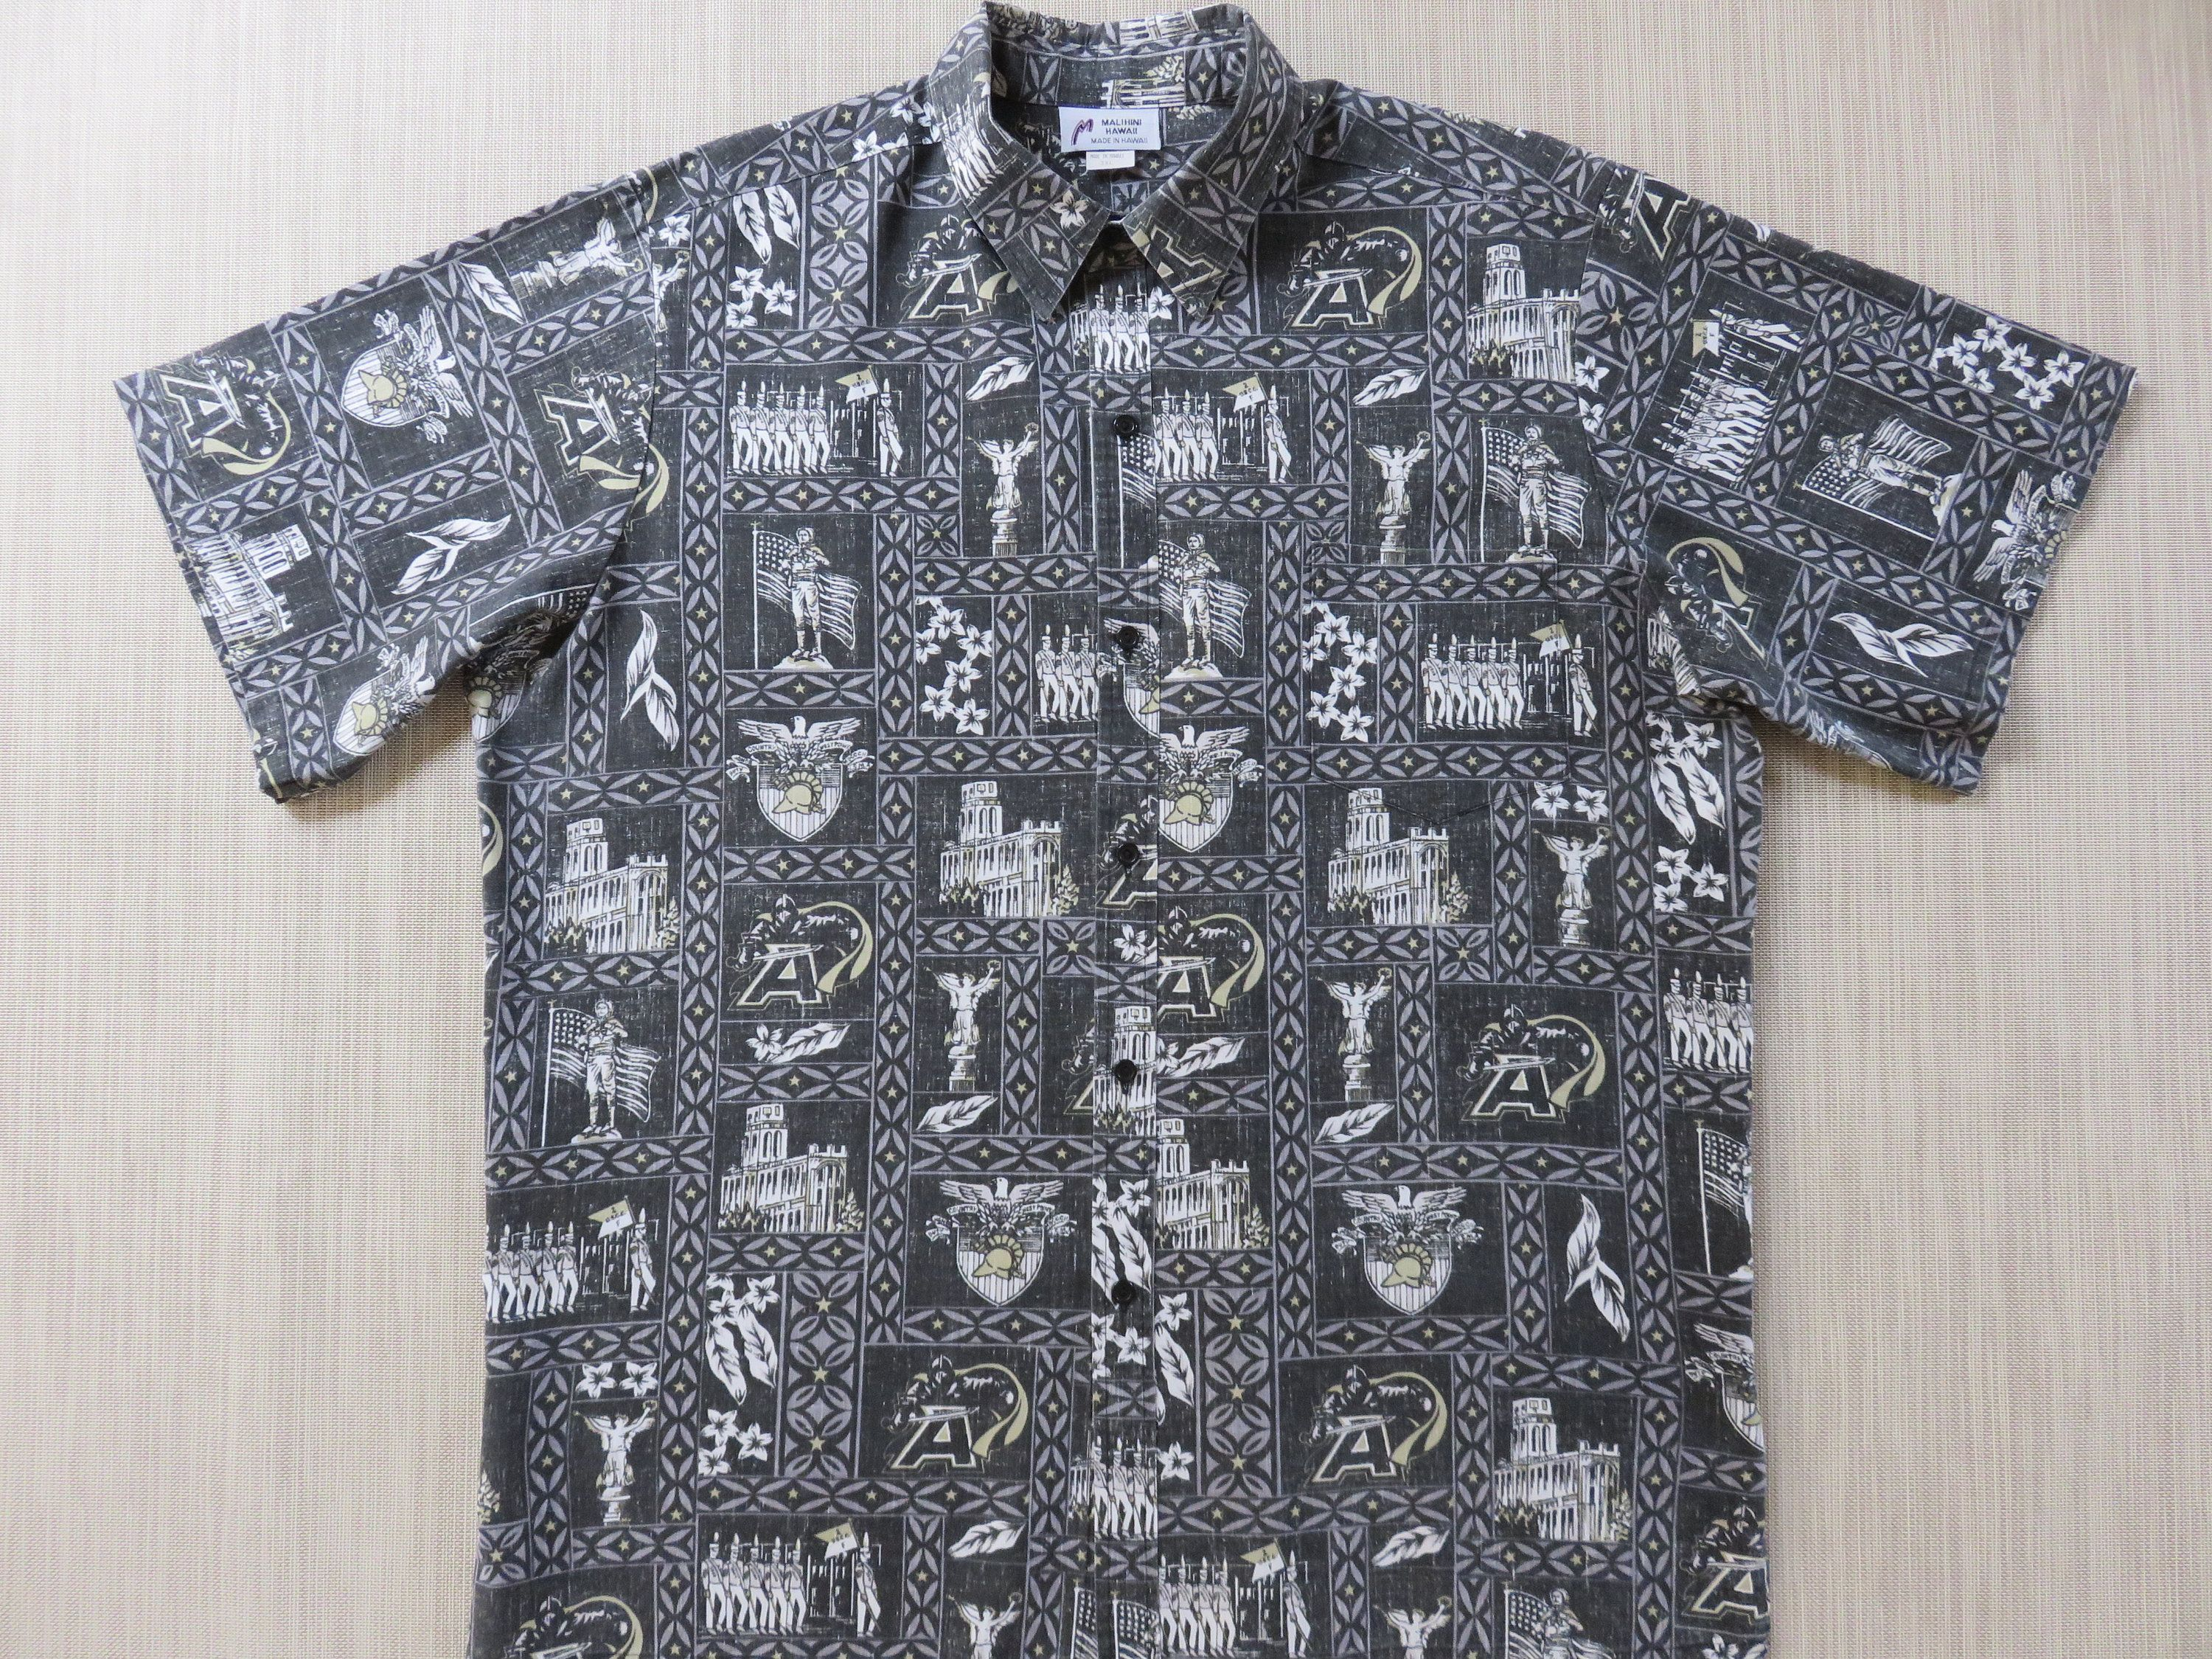 3880e03b West Point Hawaiian Shirt MALIHINI Army Mules Aloha Shirt Black Knights  USMA Hawaii Reverse Print Mens Camp - 3XL - Oahu Lew's Shirt Shack